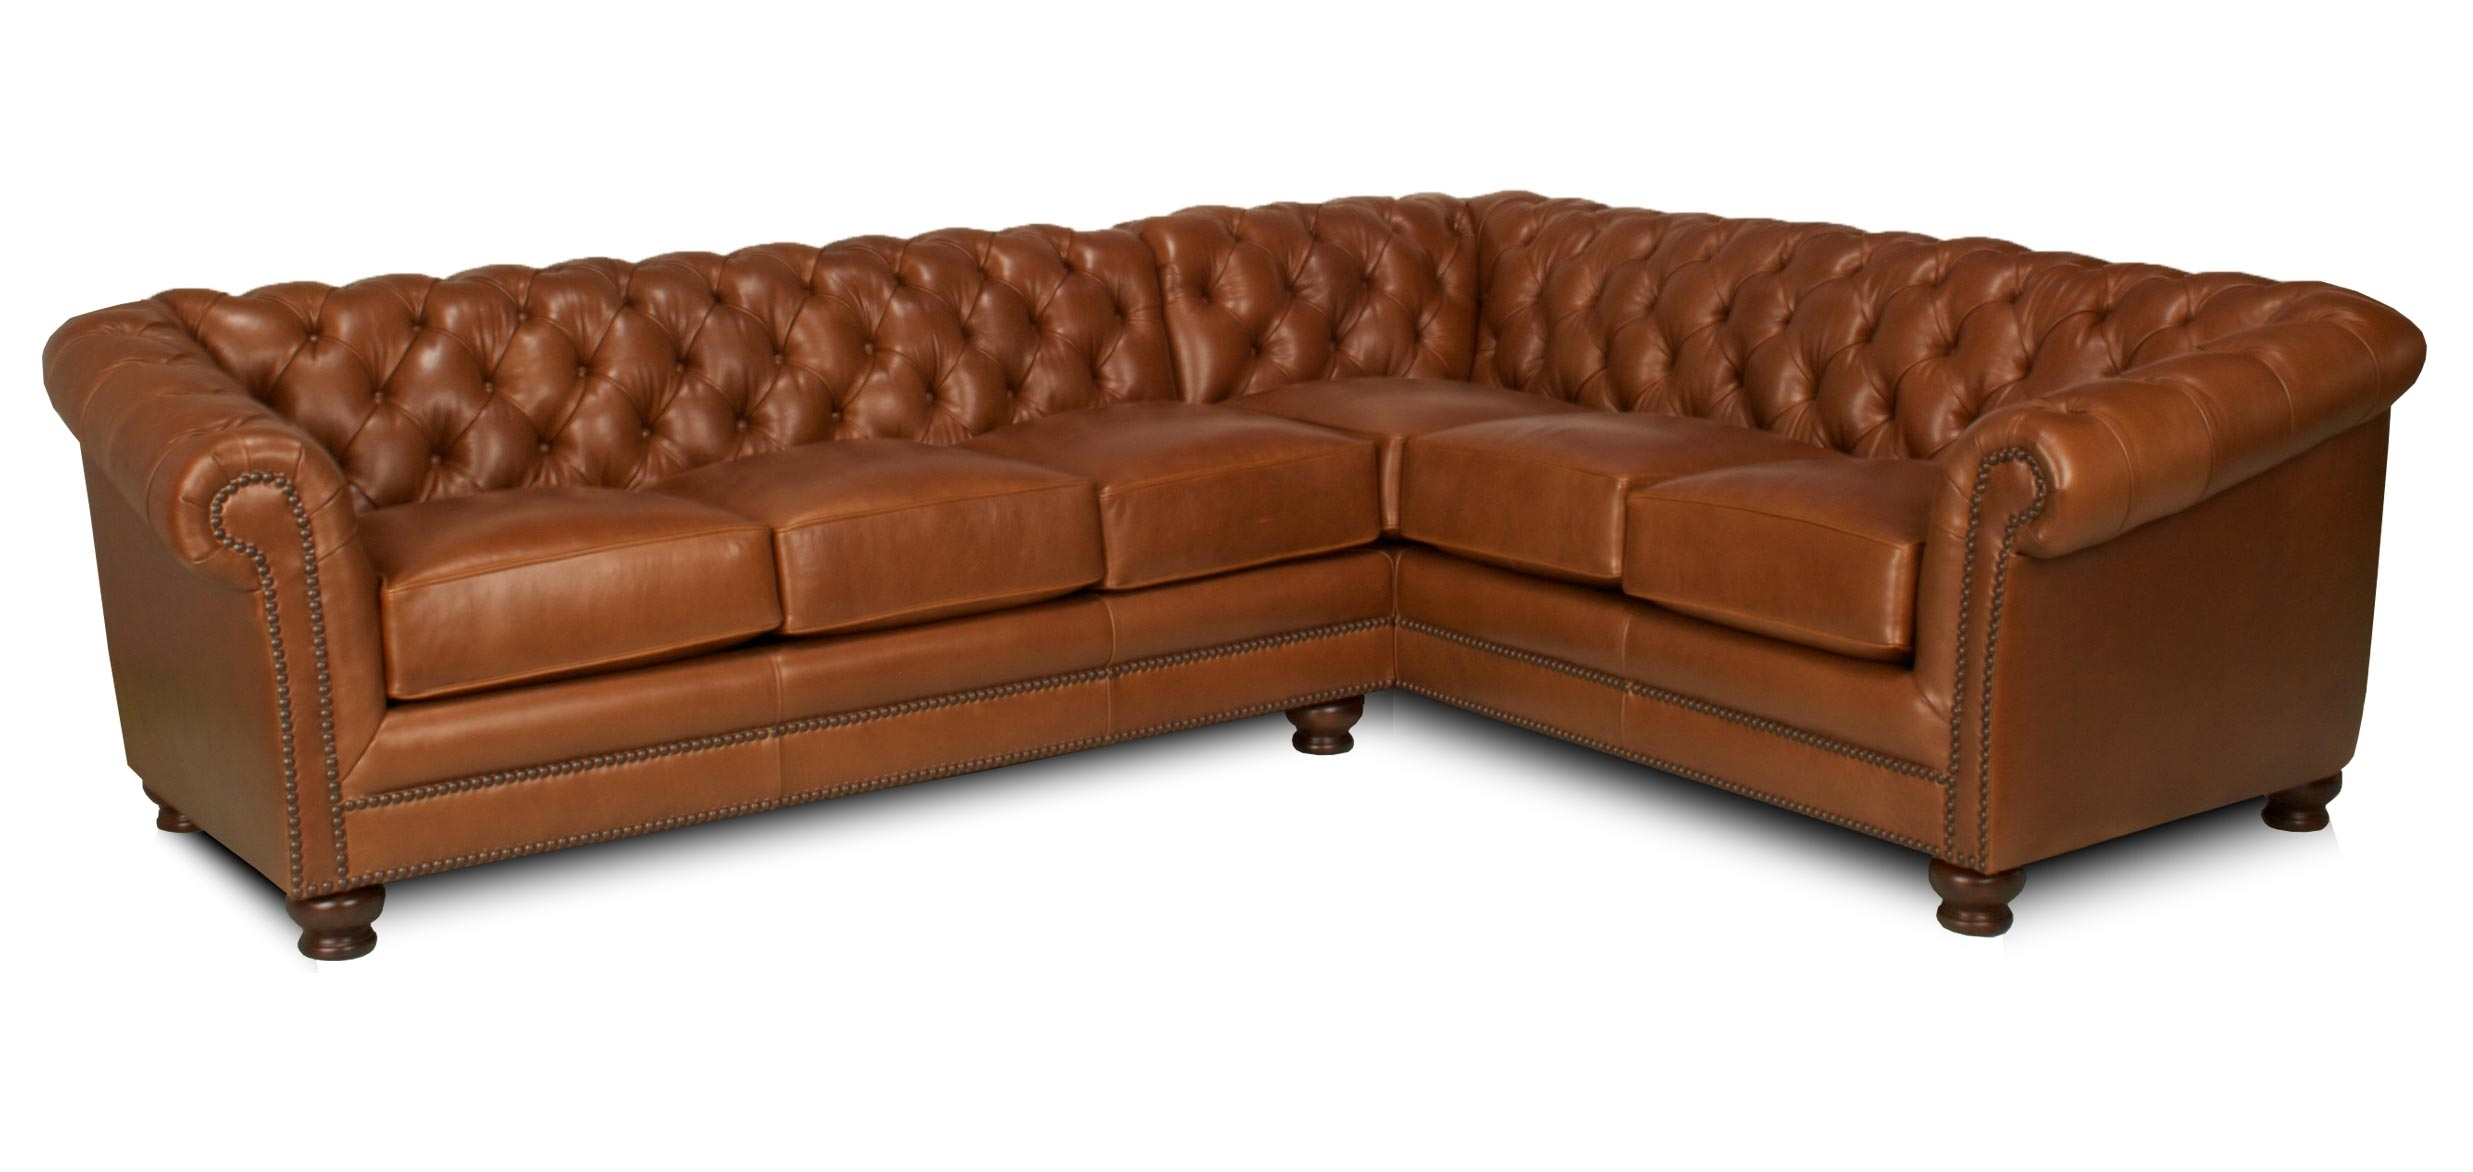 Cognac Sectional Sofa @ay13 – Roccommunity Pertaining To Travis Cognac Leather 6 Piece Power Reclining Sectionals With Power Headrest & Usb (Image 11 of 25)